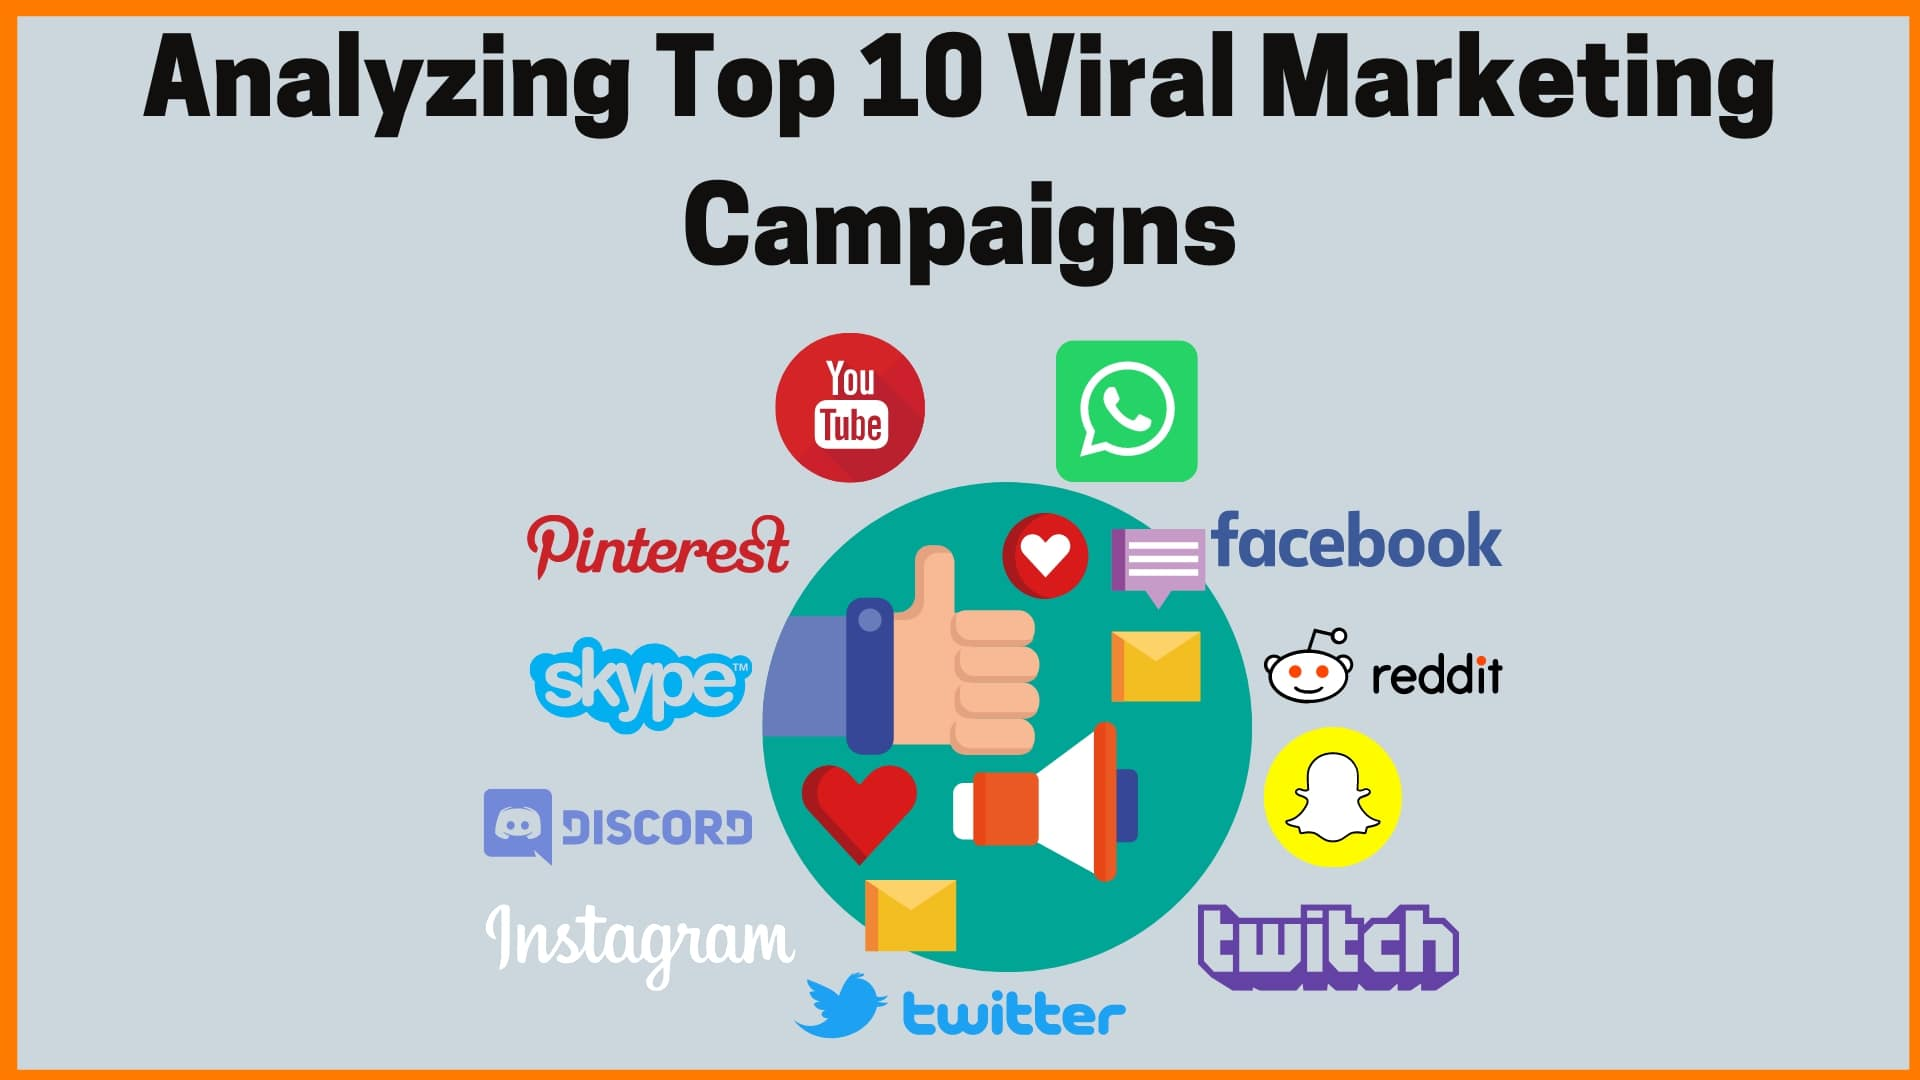 Analyzing the Top 10 Viral Marketing Campaigns